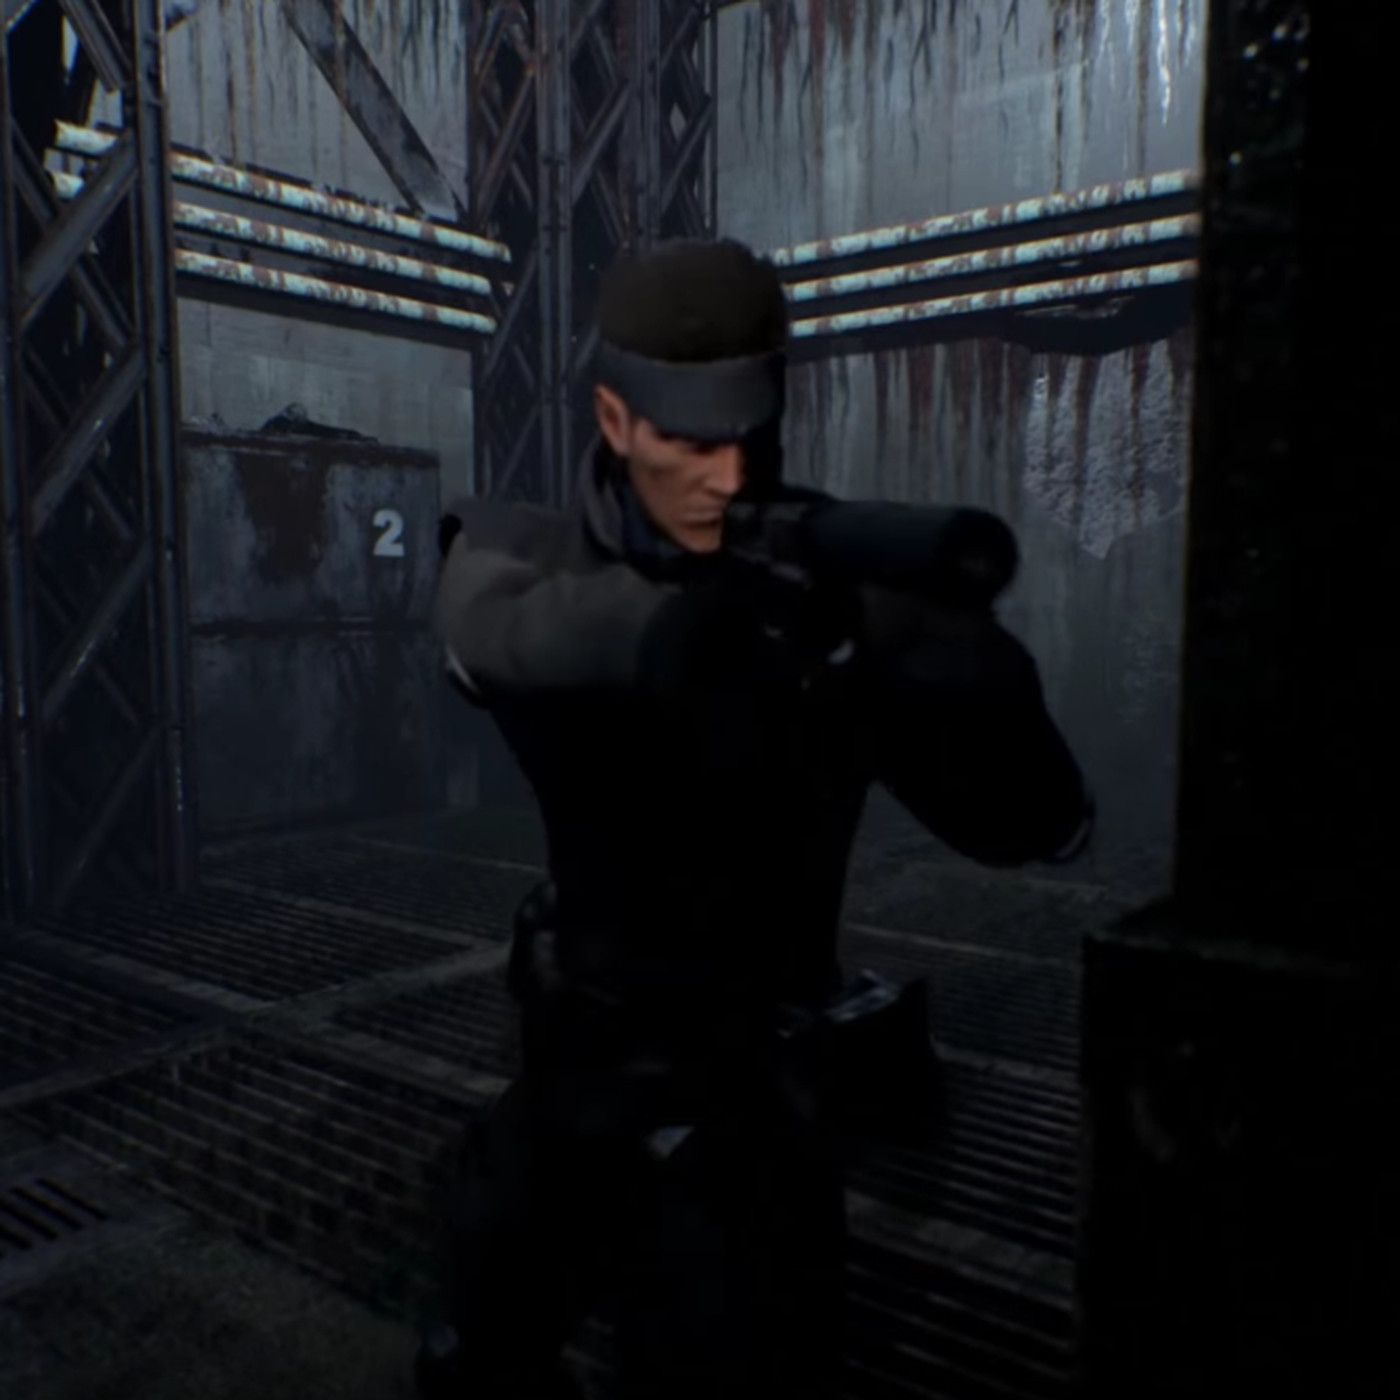 Watch the Metal Gear Solid remake on Unreal Engine 4 before